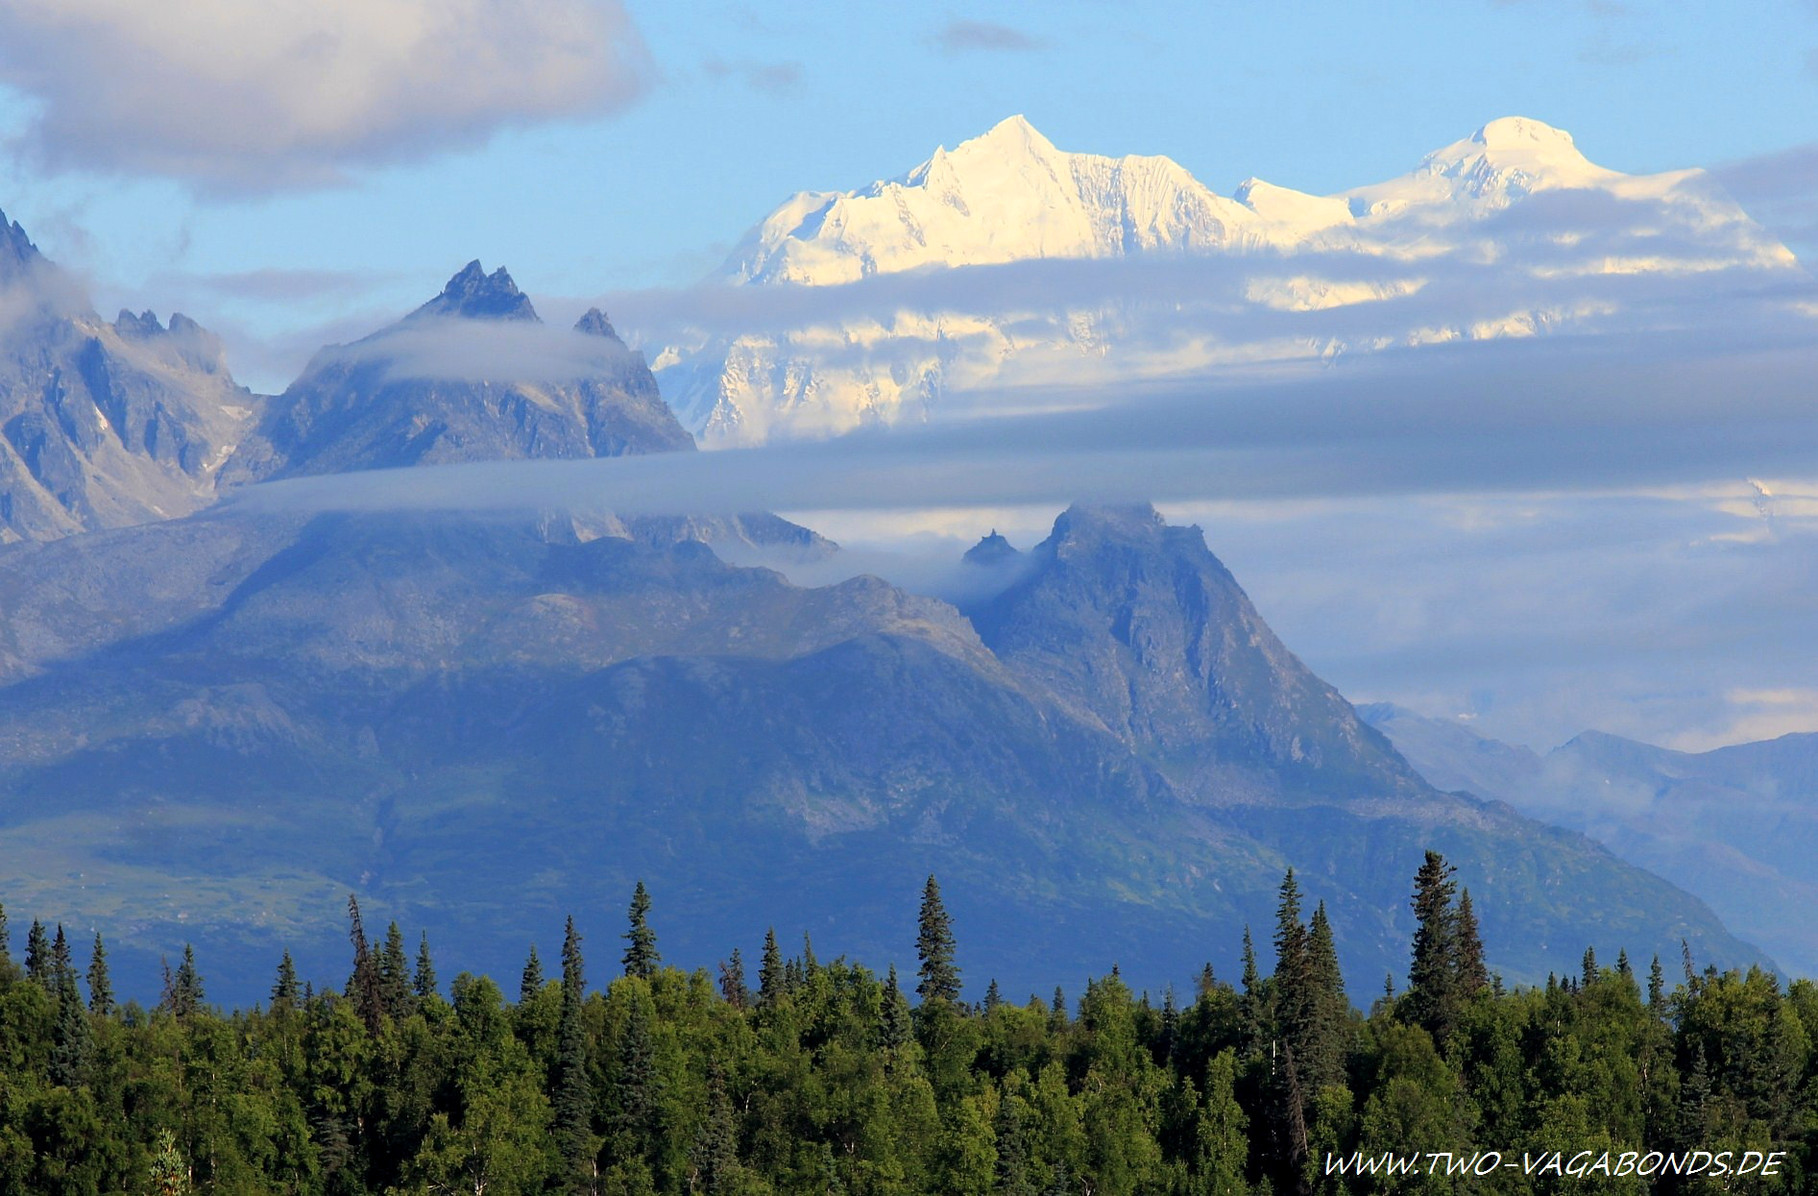 ALASKA 2011 - MOUNT HUNTER